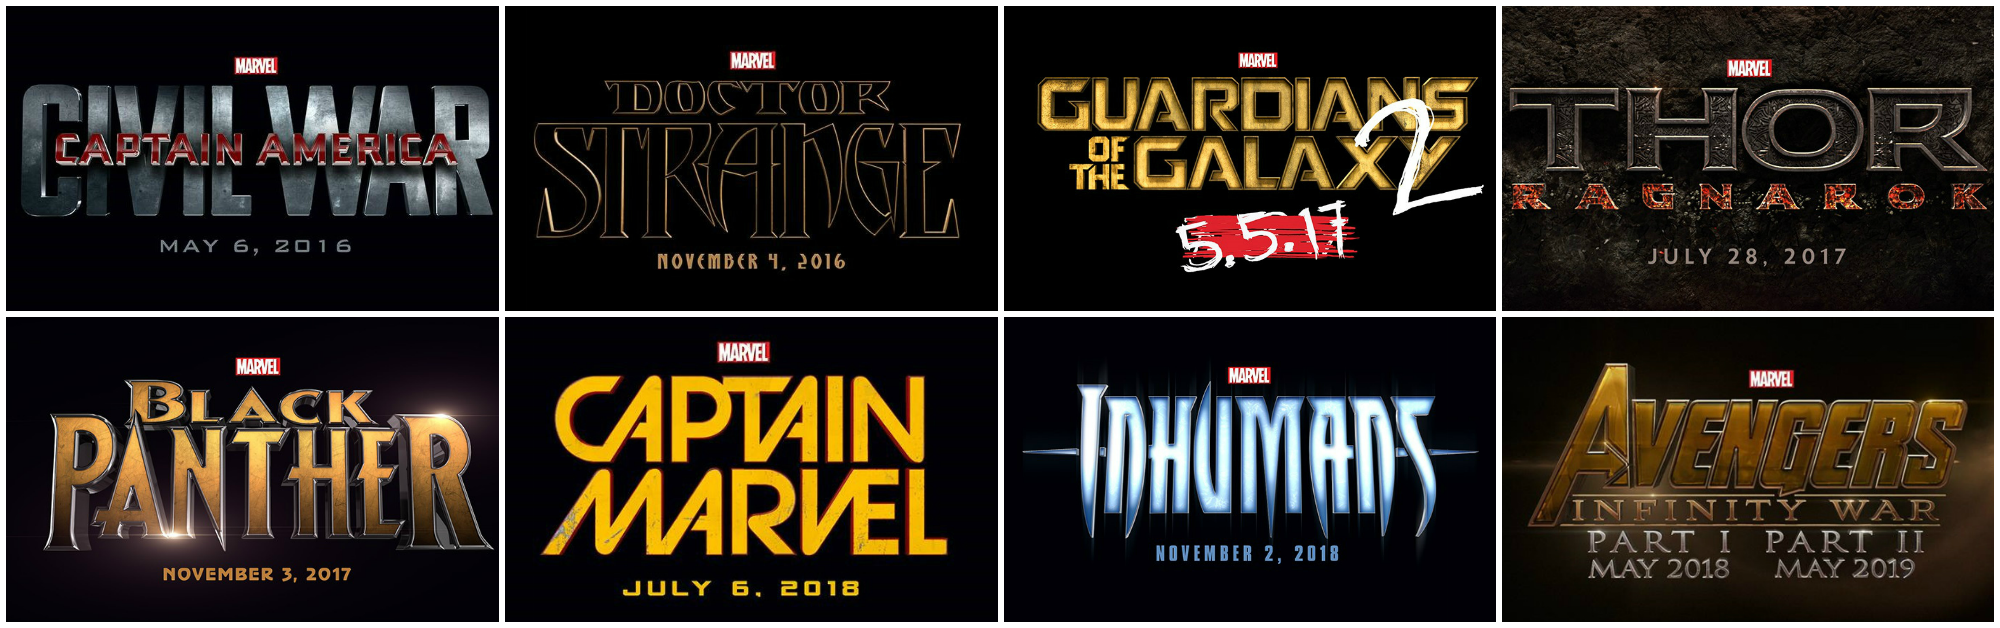 Marvel Cinematic Universe: Phase Three | Merlin's Musings